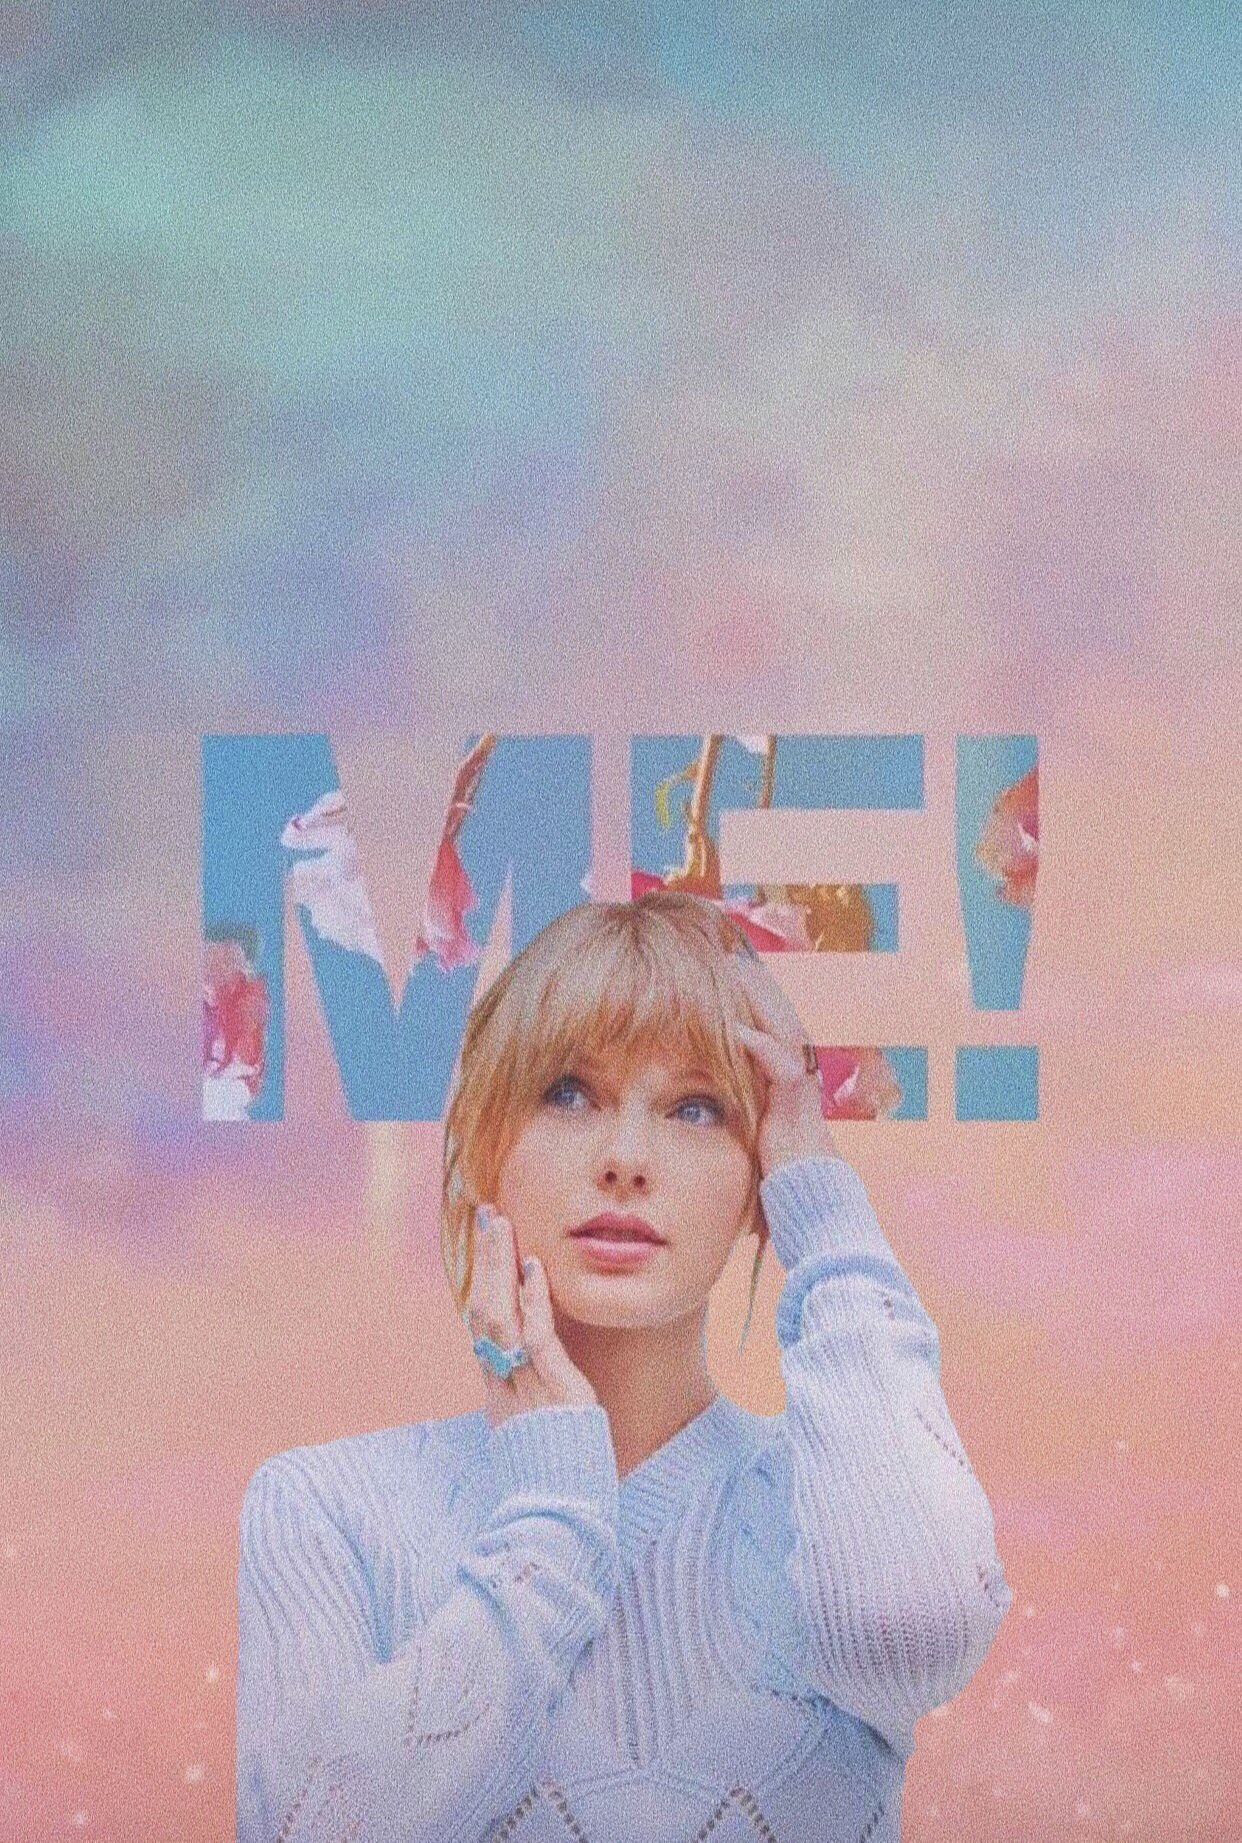 List Of Top Pics Of Some Of The Best Pop And Rap Artists New And Old Pictures From Artist Such Taylor Swift Wallpaper Taylor Swift Pictures Taylor Swift Fan